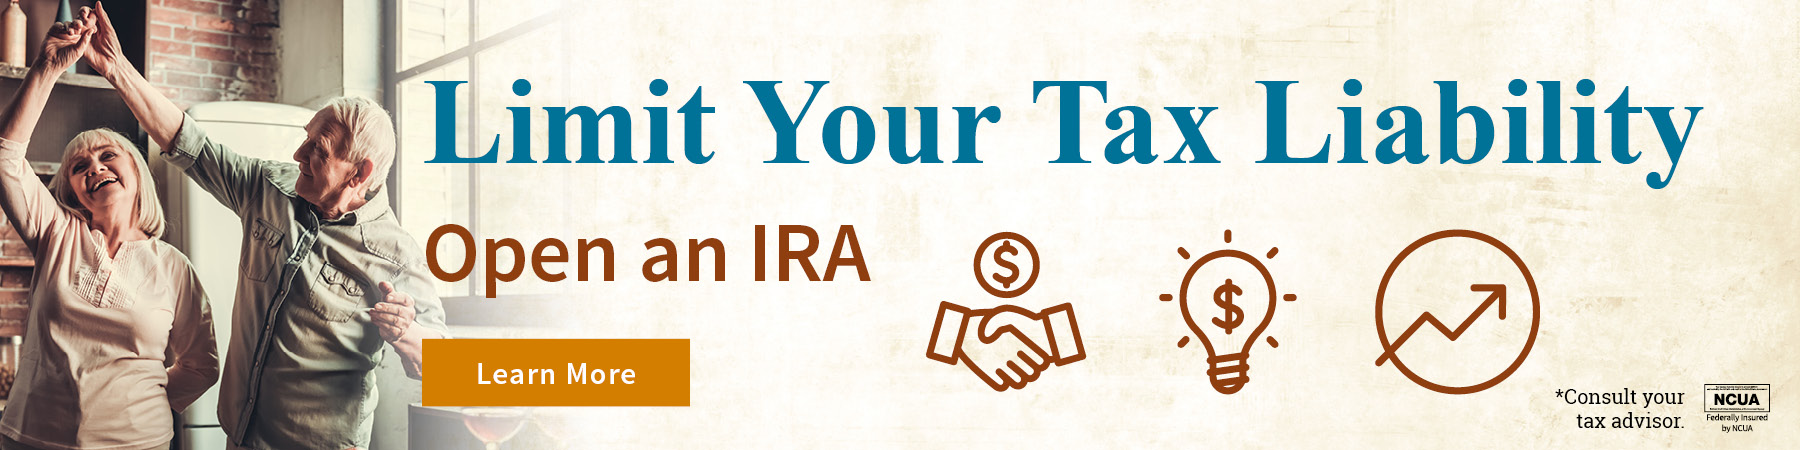 Lean more about our IRA Accounts